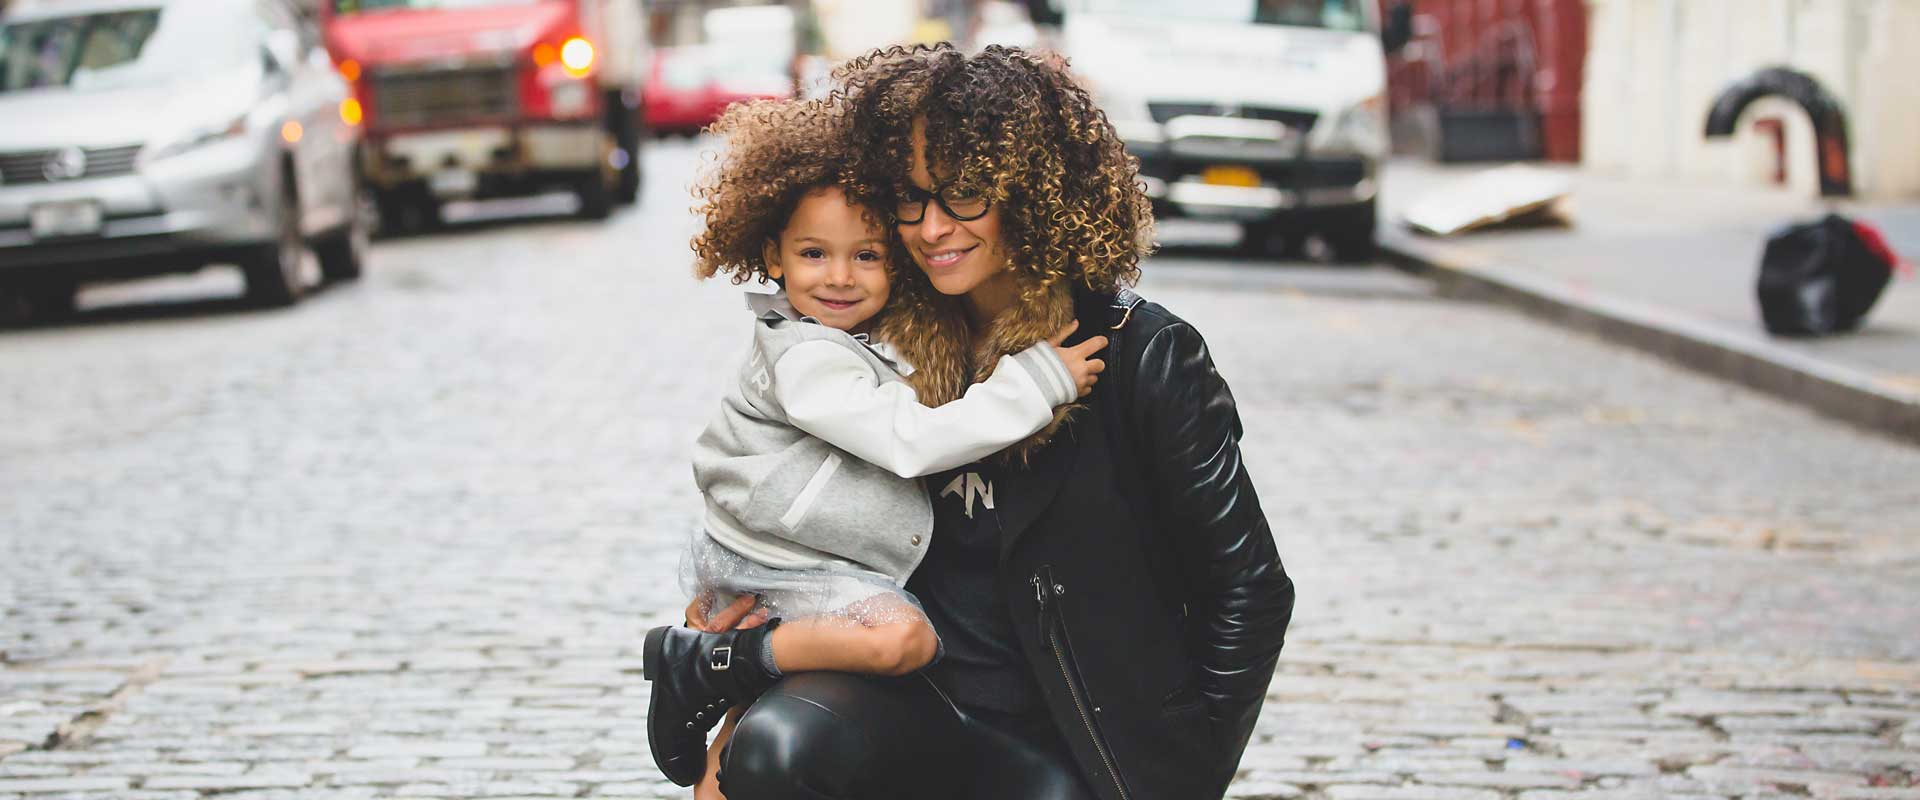 Young woman in black leather jacket holds female toddler wearing grey coat while crouching in an empty street